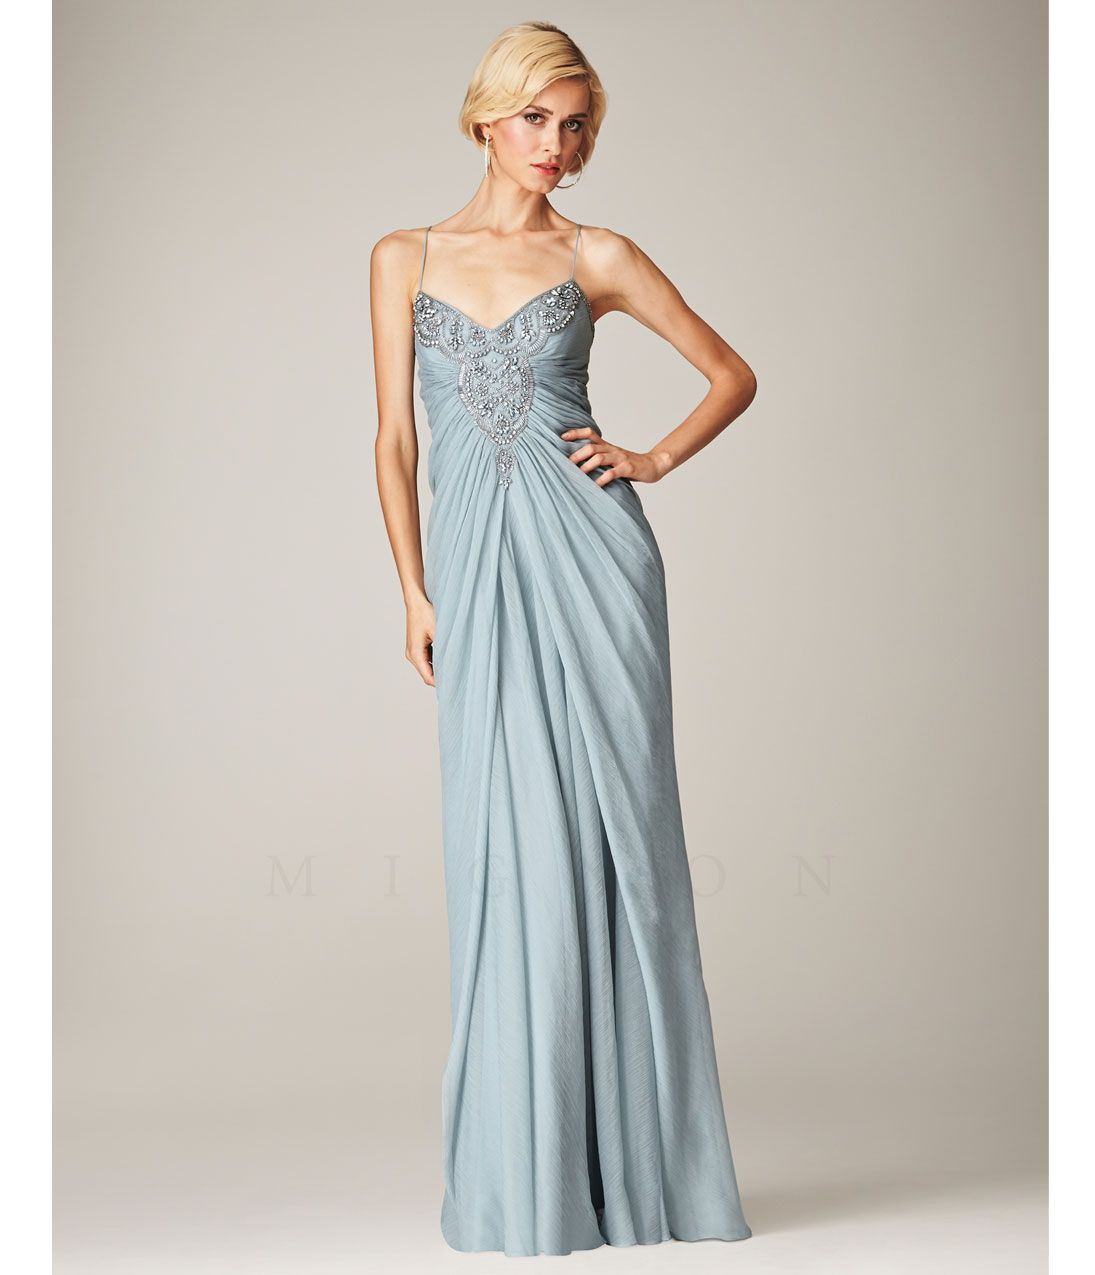 Mignon Spring 2014 Dresses - Antique Blue Beaded V-Neck Long Prom ...